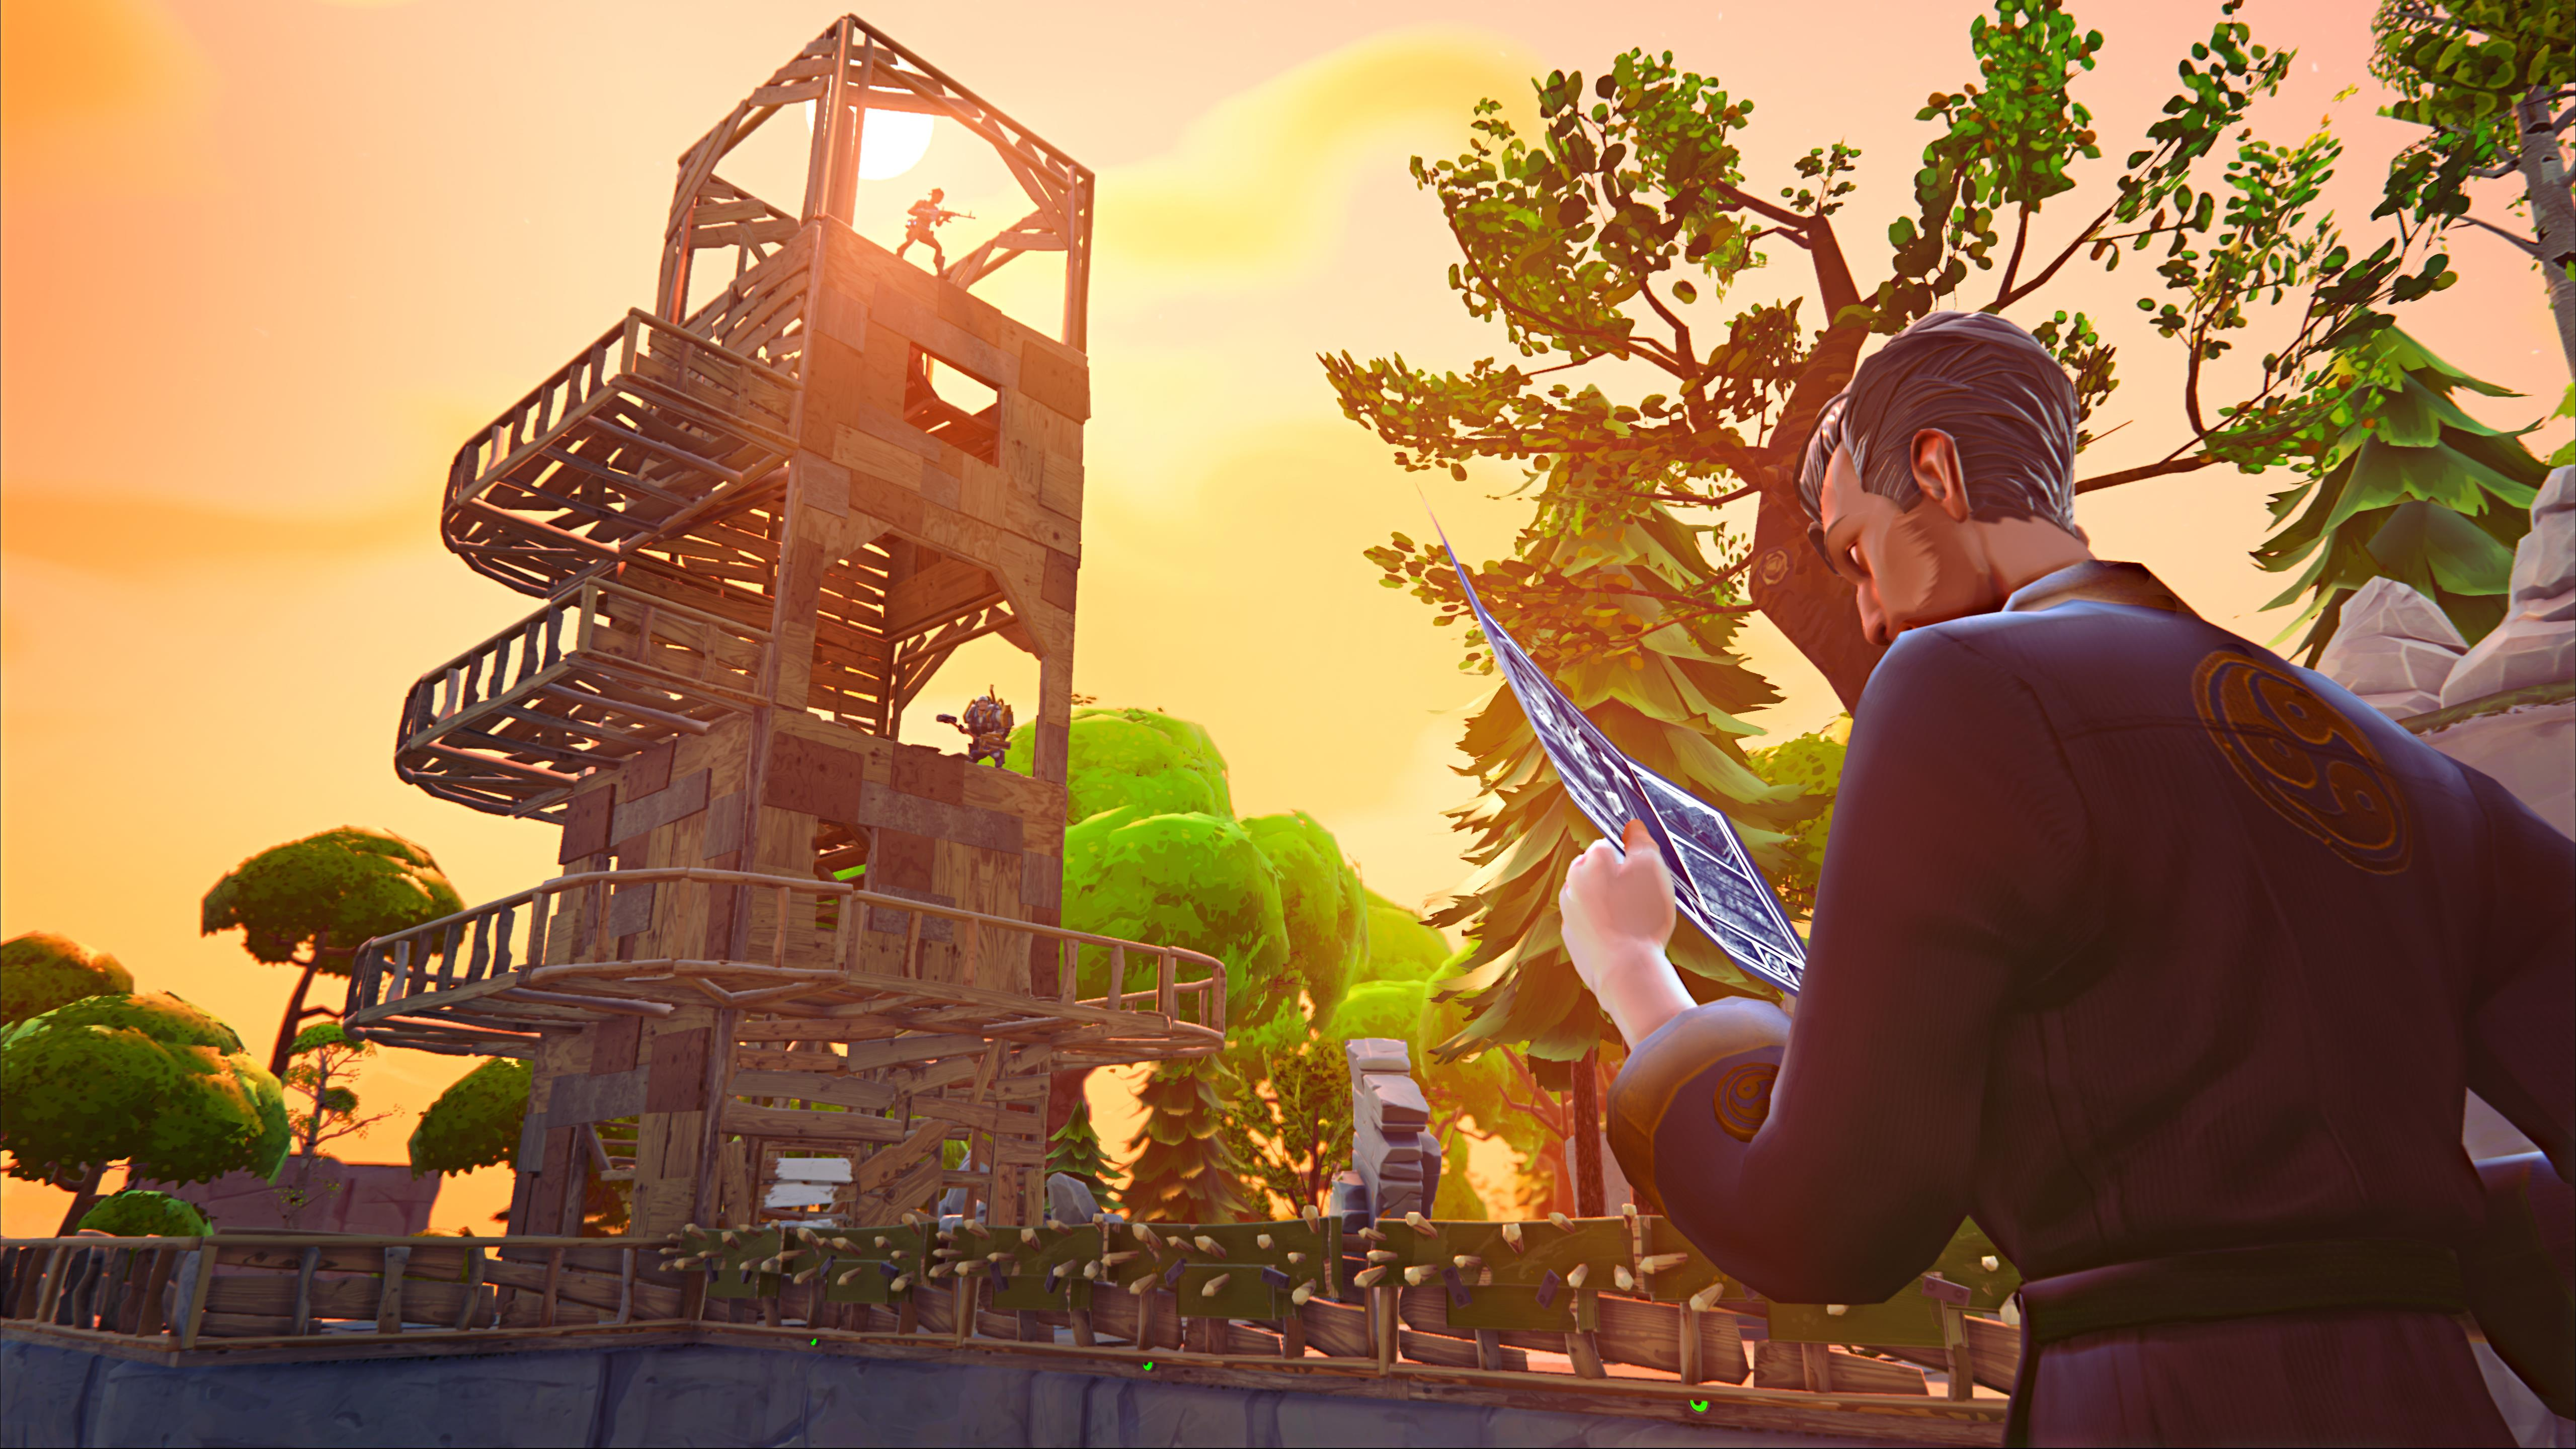 How To Change Building Materials In Fortnite Ps4 Builder Pro Fortnite If You Aren T Using Builder Pro On Console You Aren T Playing Right